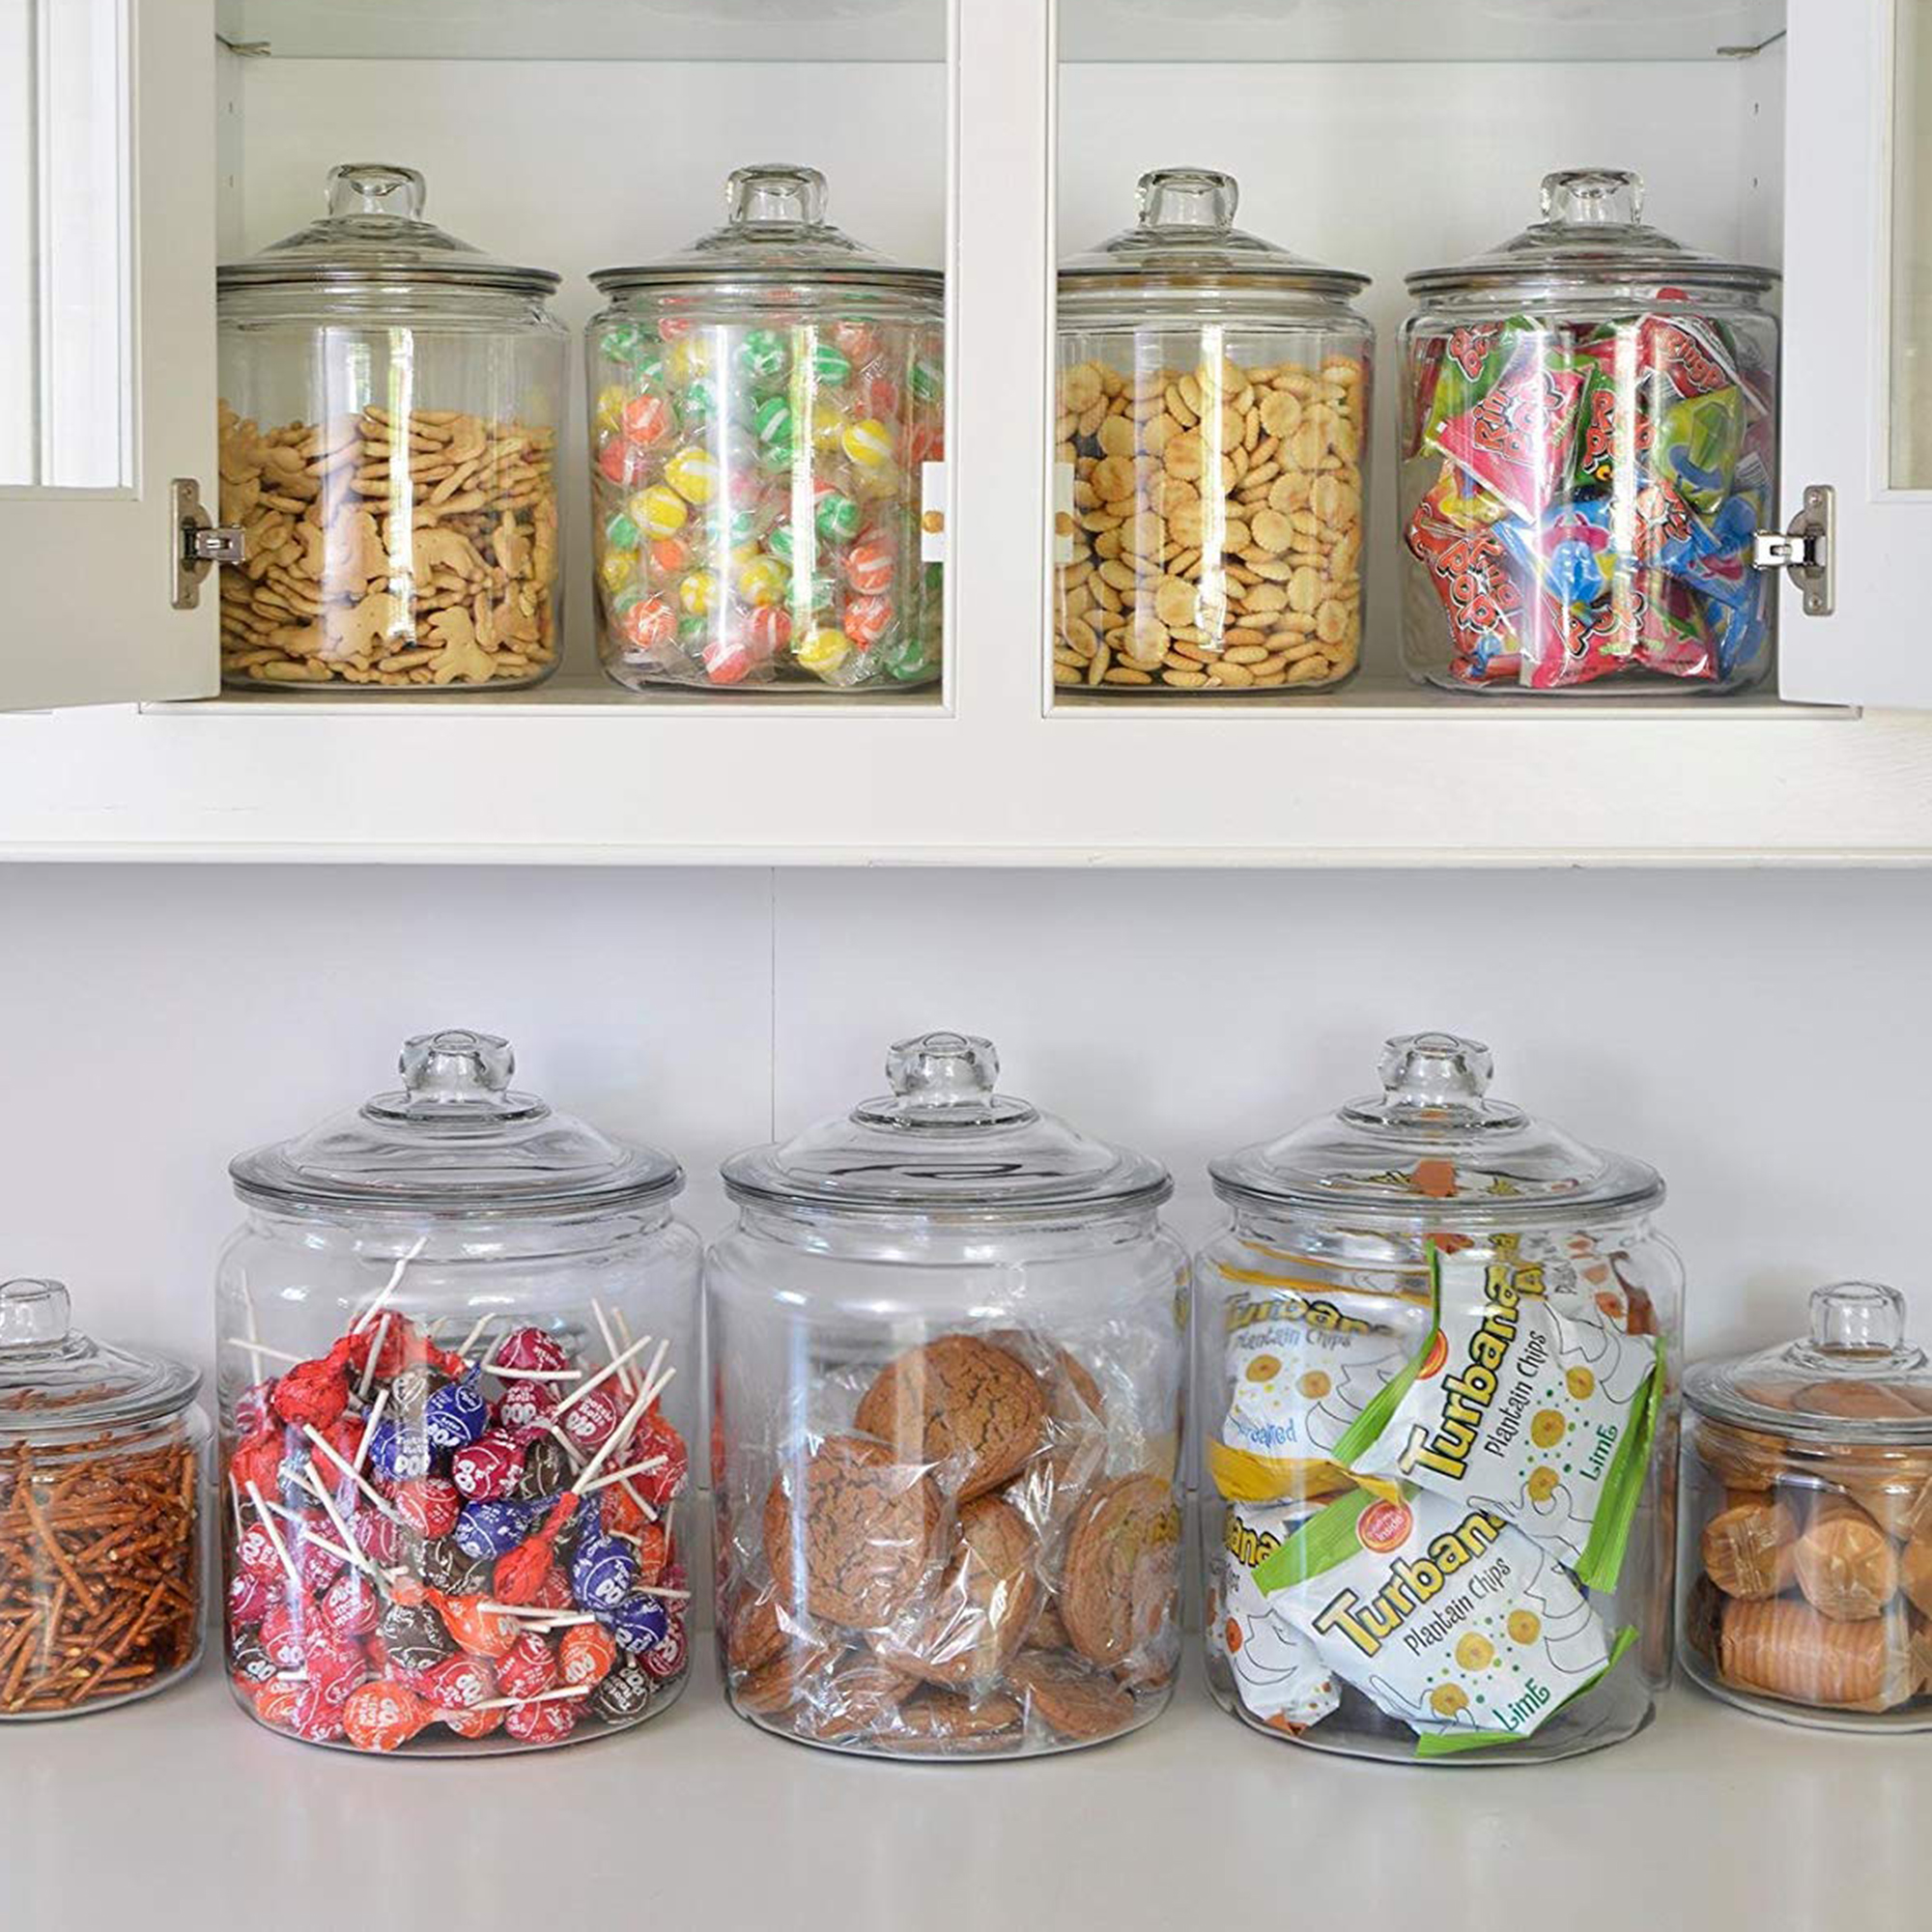 856408e9aac Glass jars can help with kitchen and pantry organization